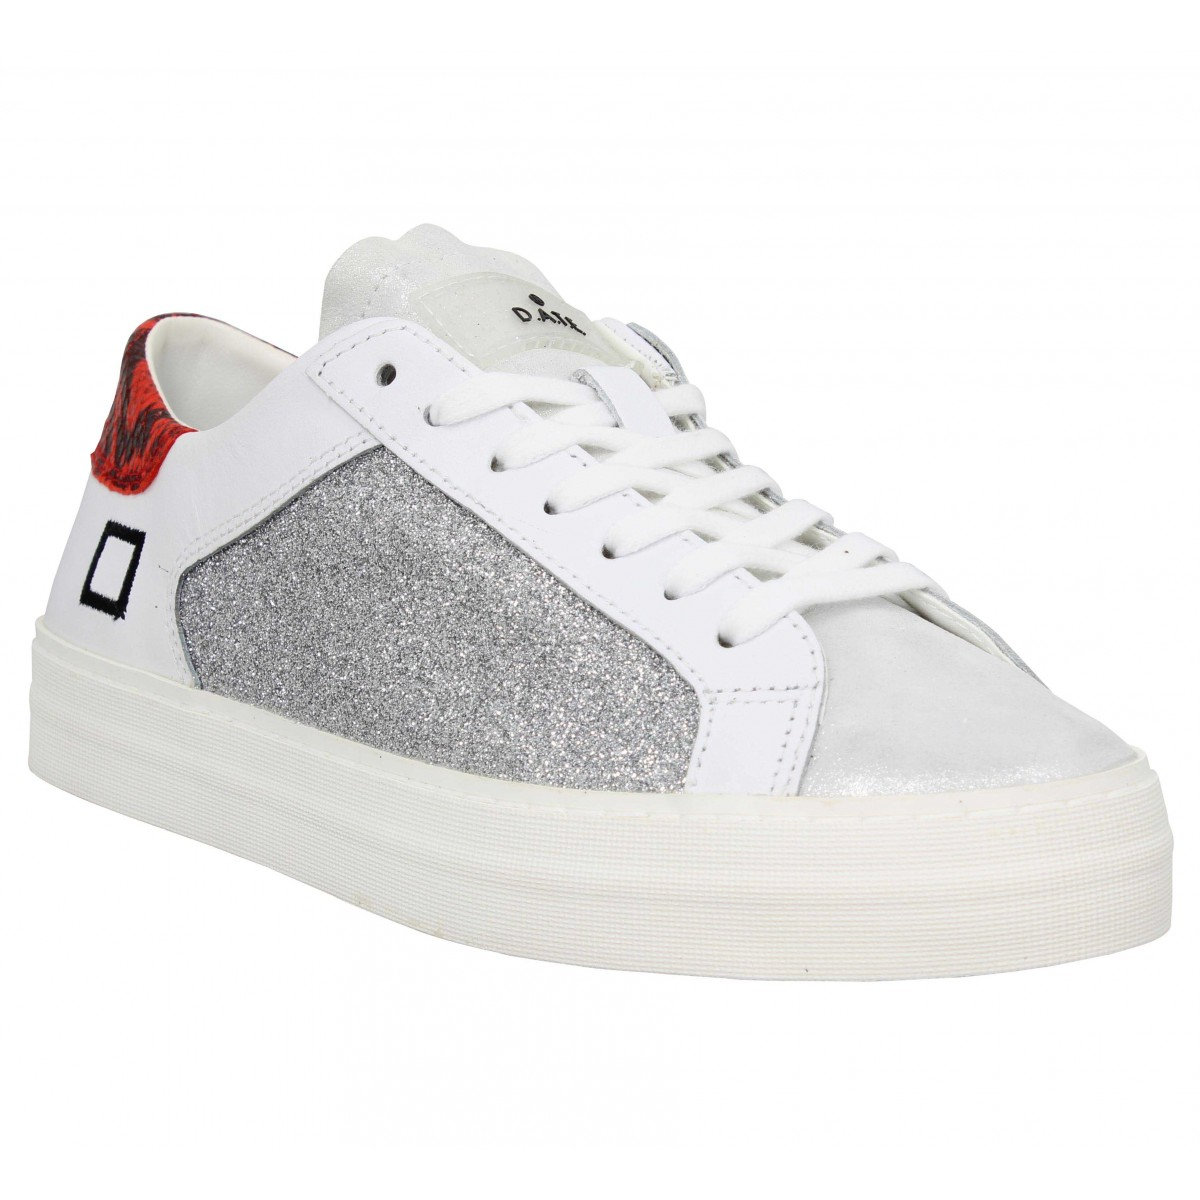 D.A.T.E Marque Date Sneakers Curve...